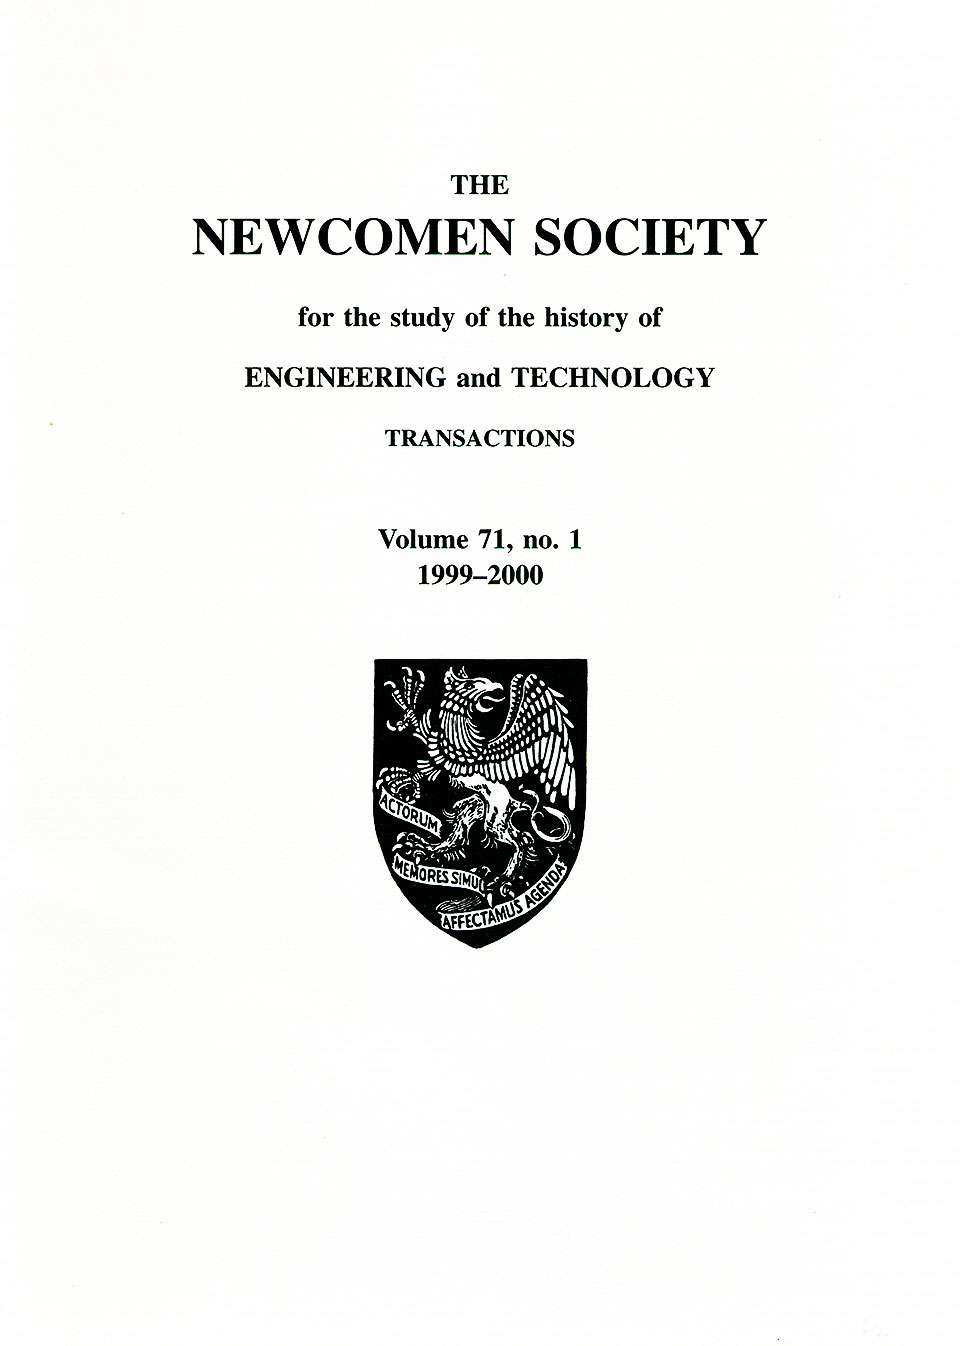 The Journal - V71 No1 1999 to 2000 - cover